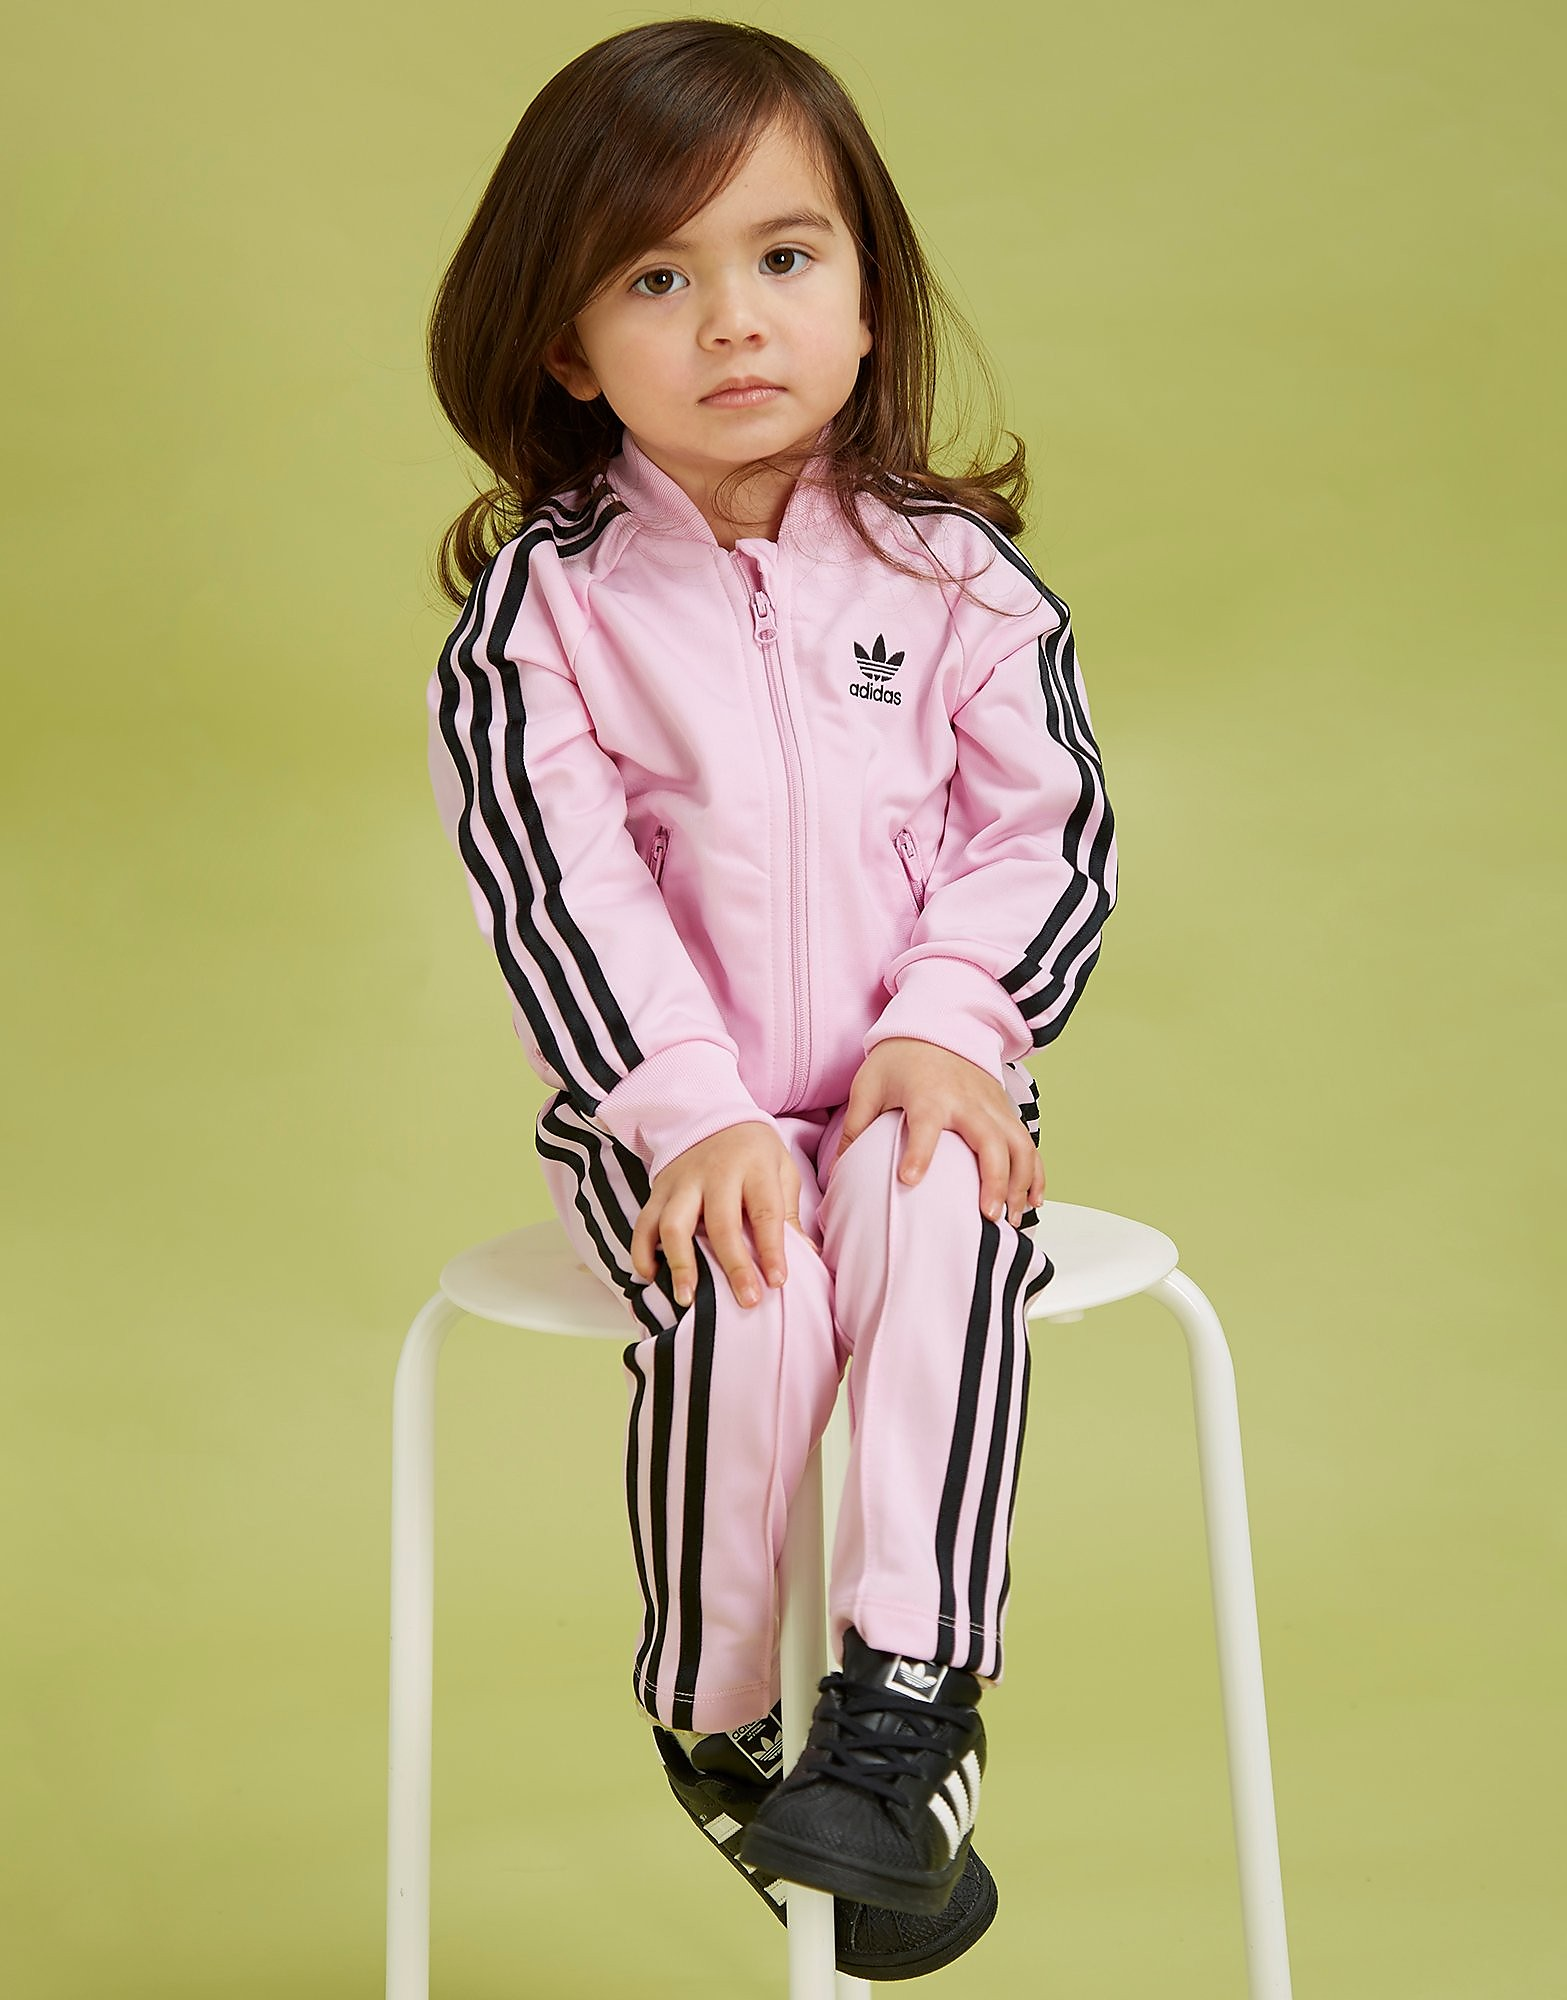 adidas Originals Superstar Tracksuit Baby's